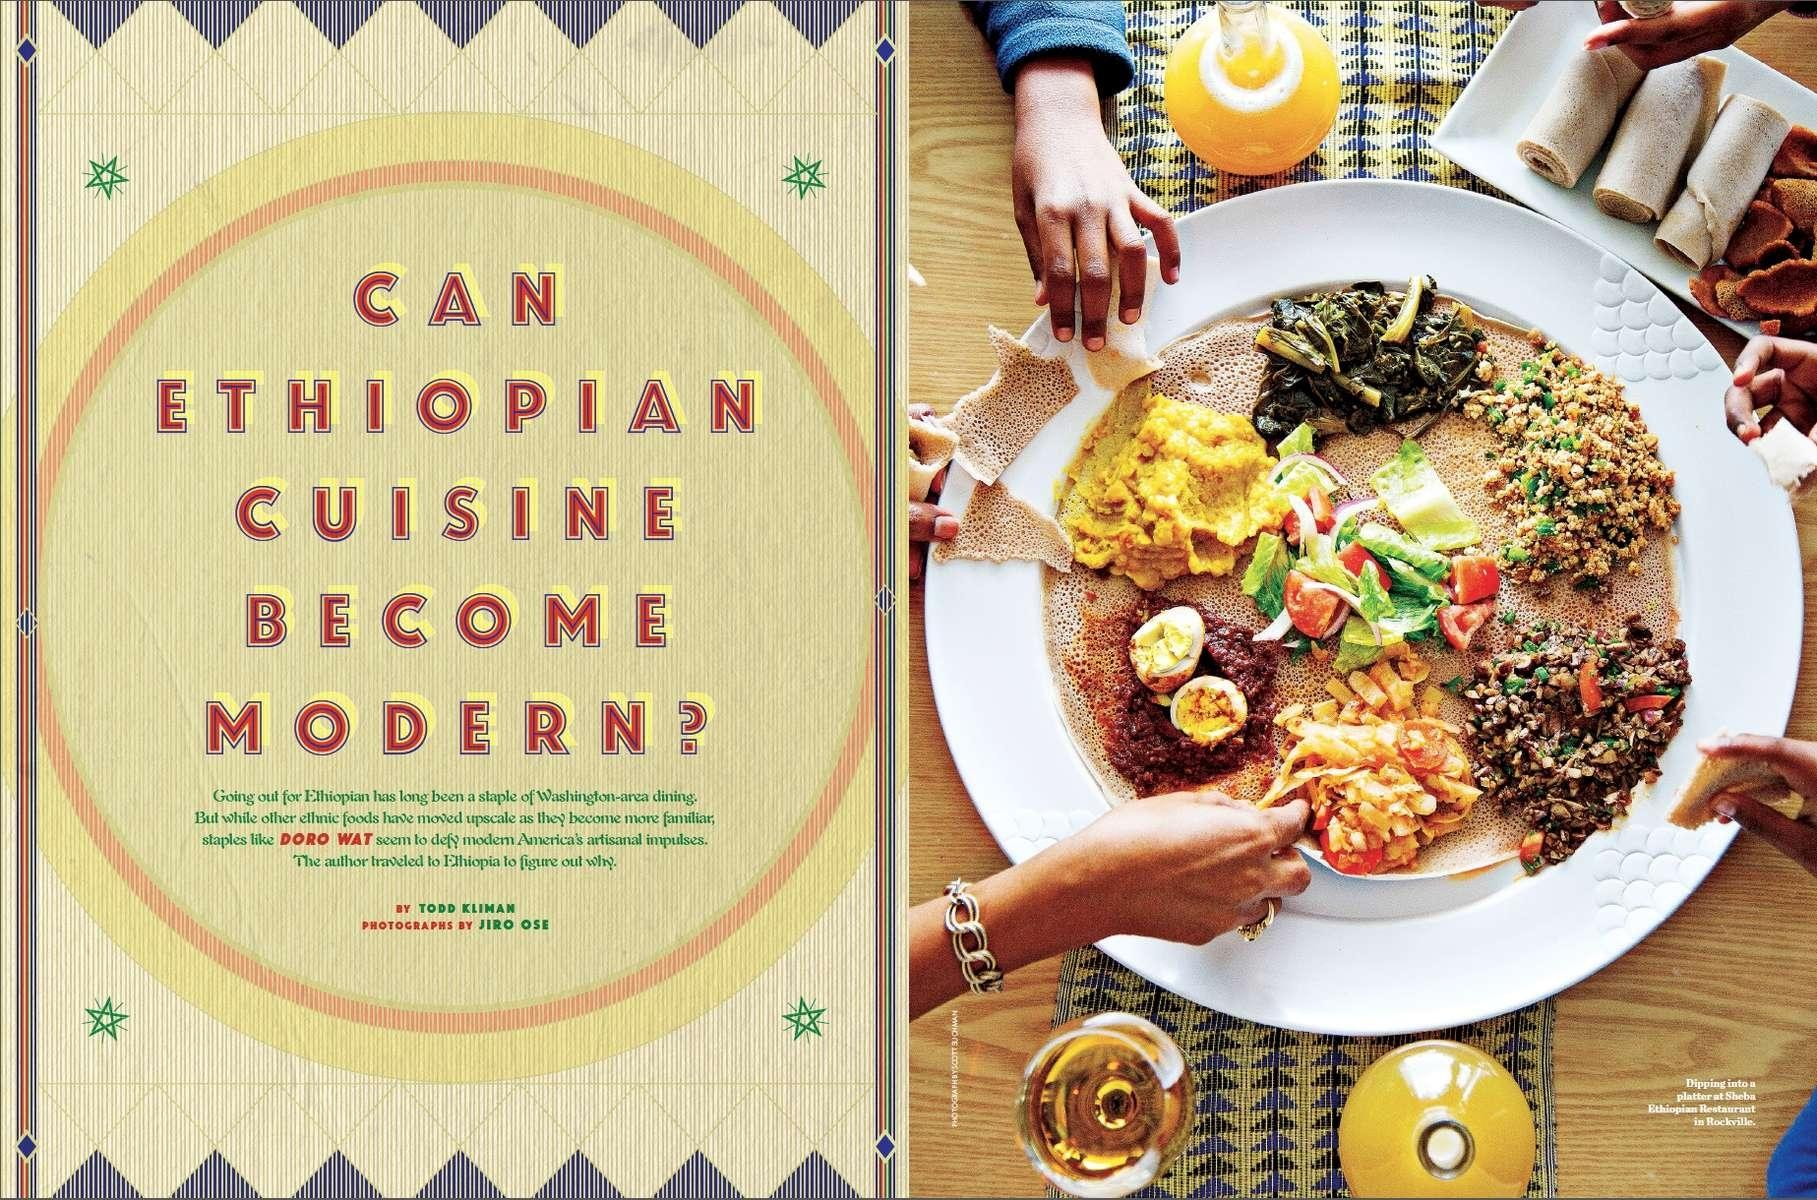 Washingtonian Magazine, Searching for the Authentic Taste